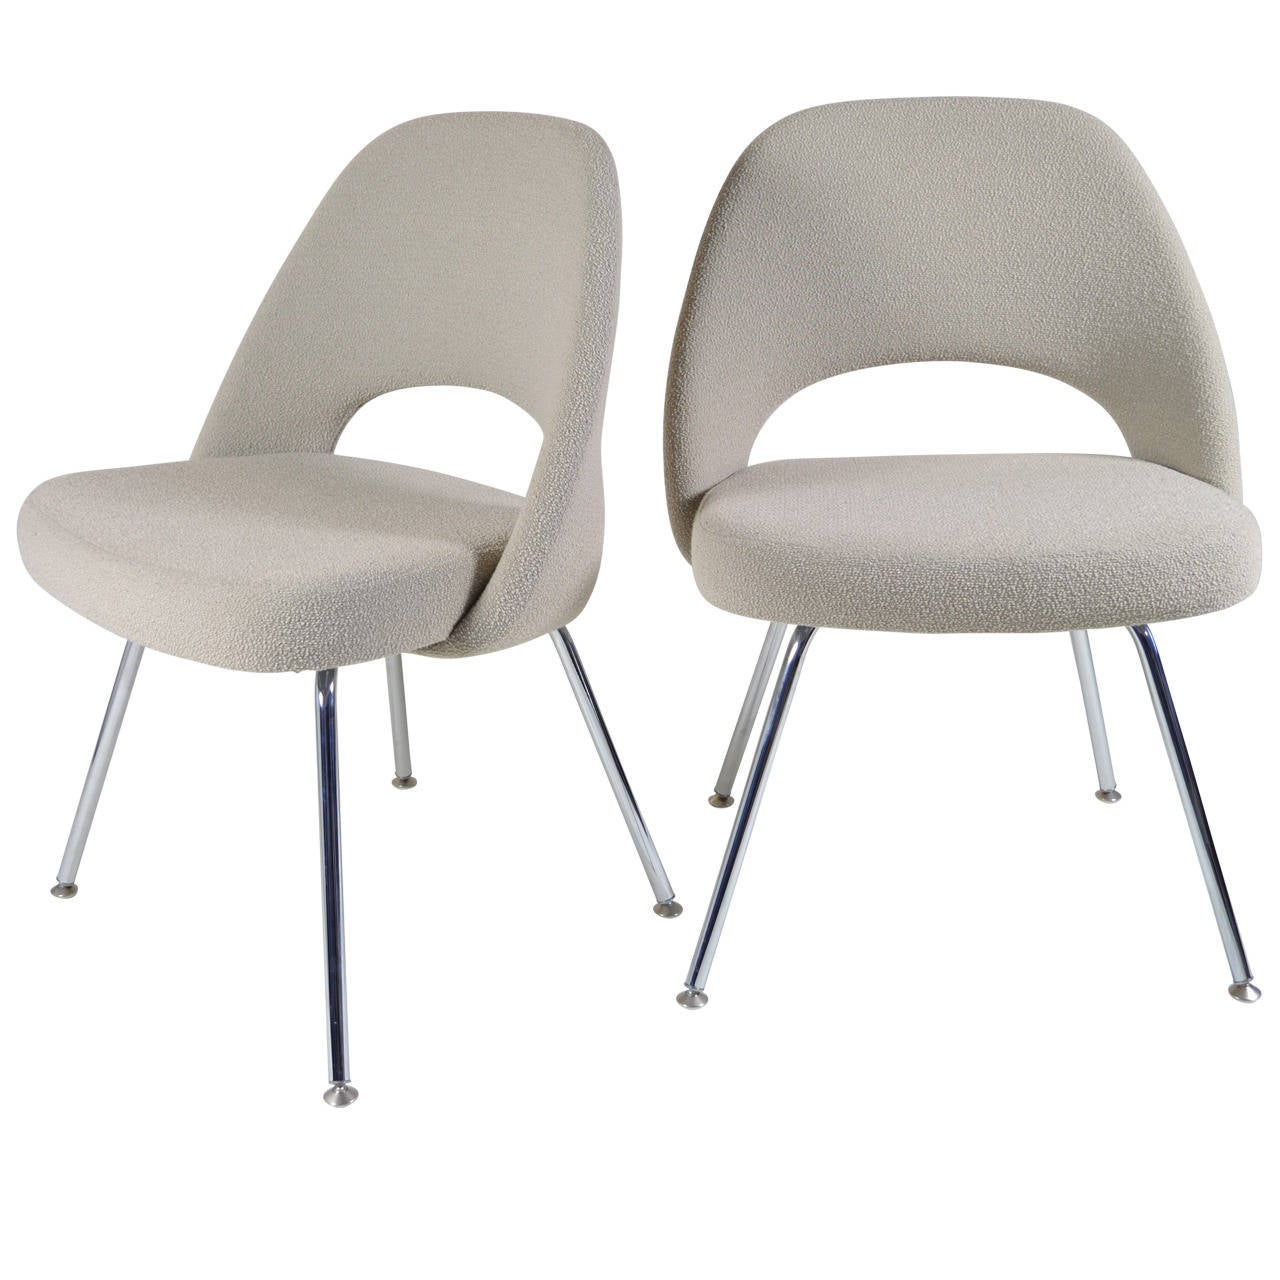 Pair saarinen executive armless chairs at 1stdibs for Saarinen executive armless chair